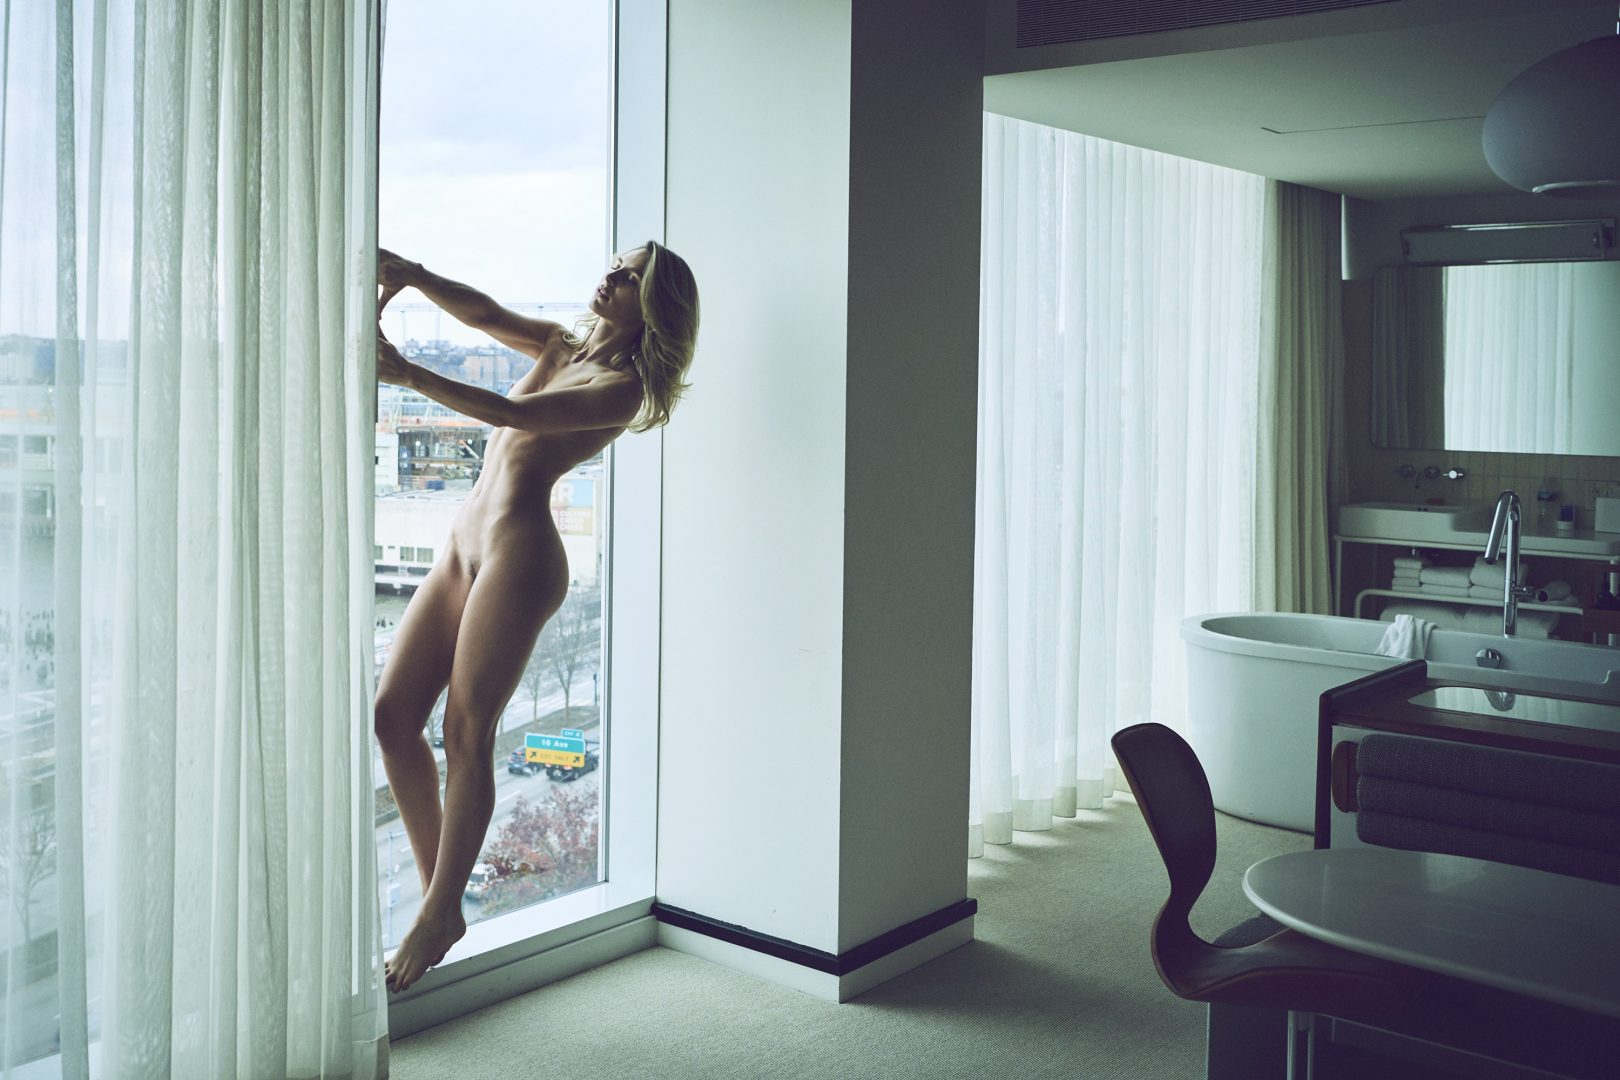 Naked girl standing at window in hotel room by Stefan Rappo